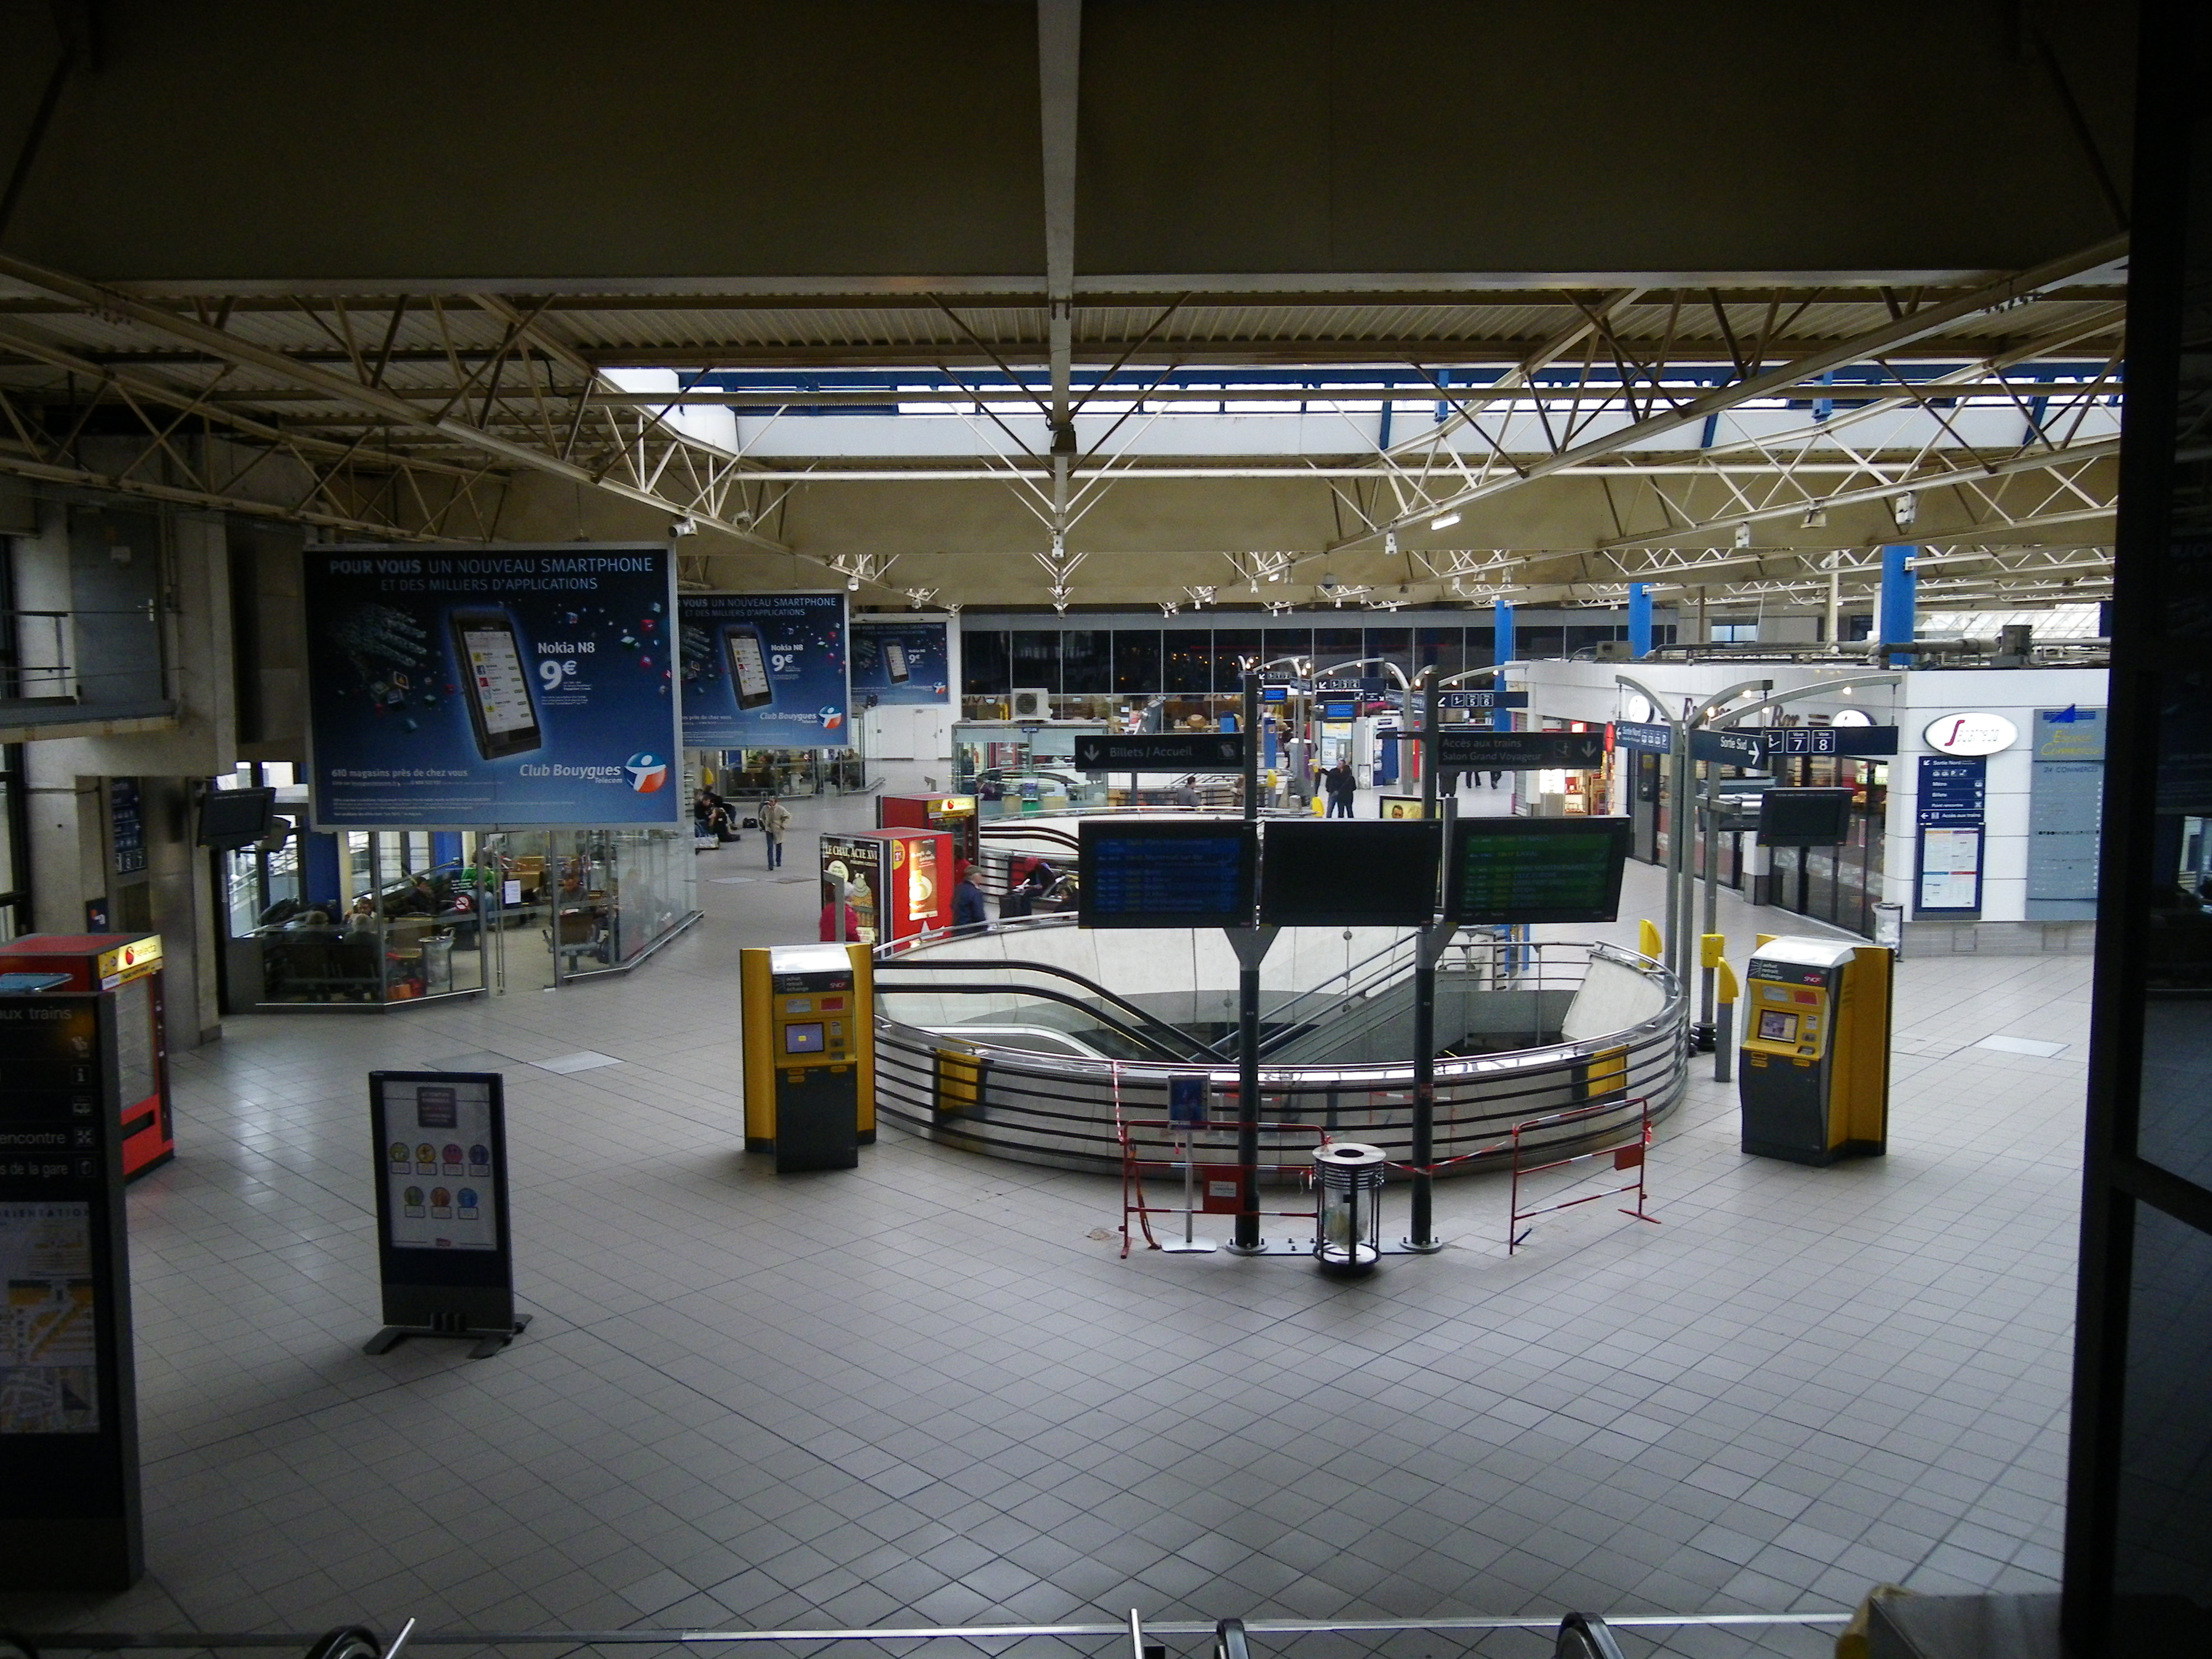 Google Interieur File:rennes, Interieur De La Gare.jpg - Wikimedia Commons